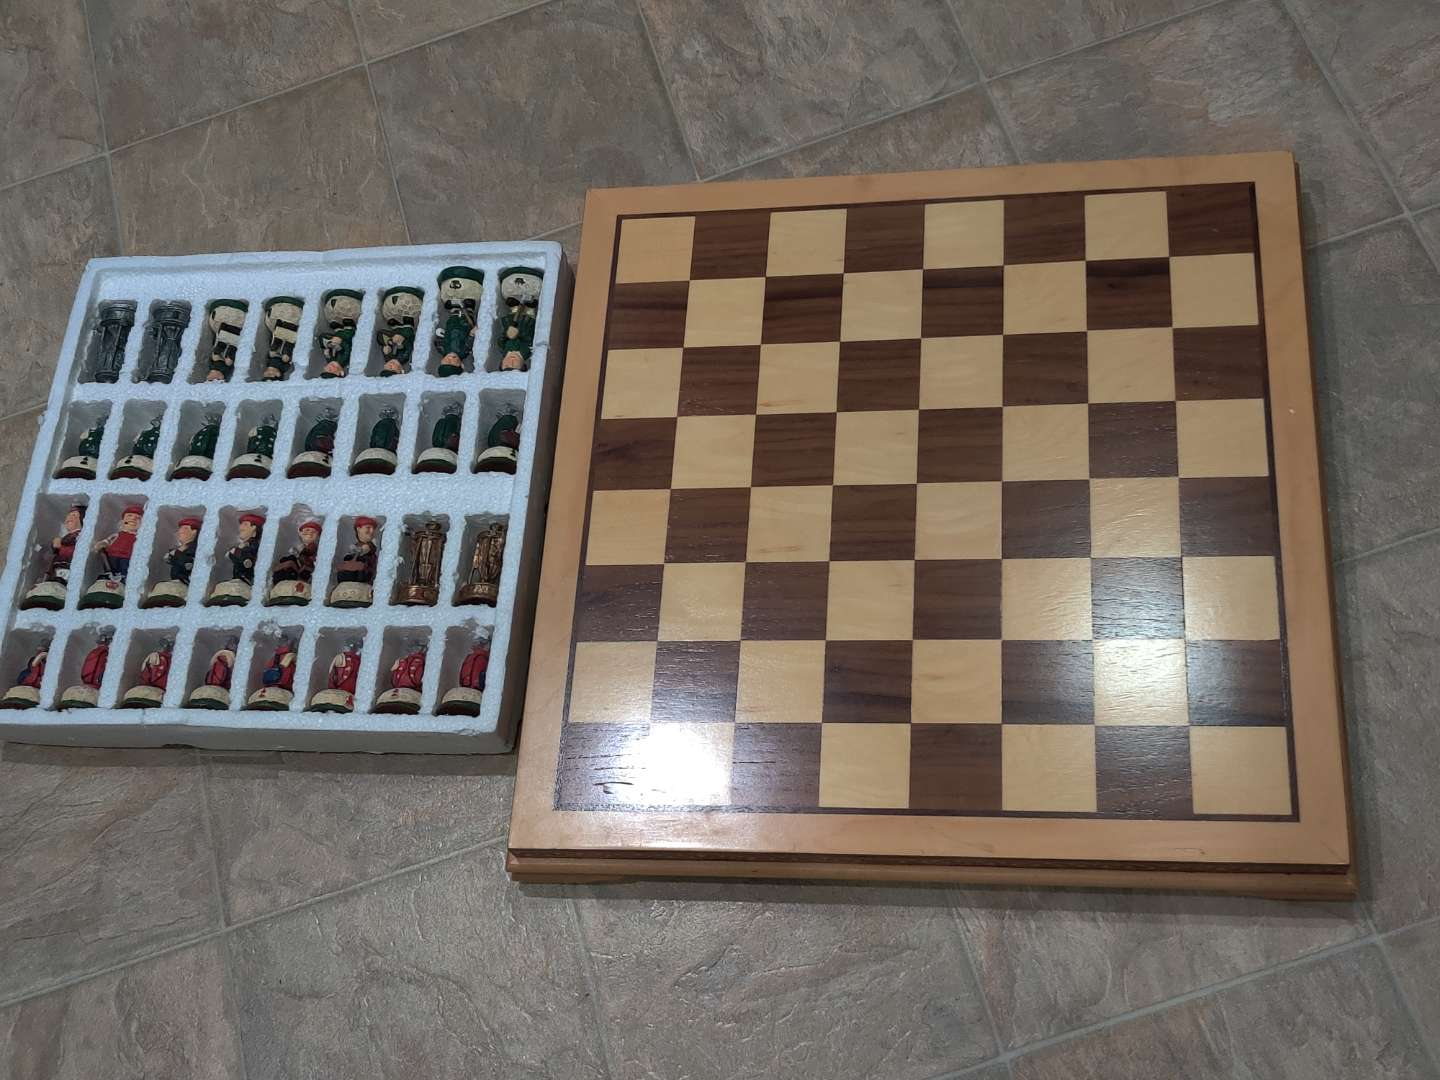 # 76 very collectible golf golfers motif chess set in excellent condition don't think it was ever used board is wood